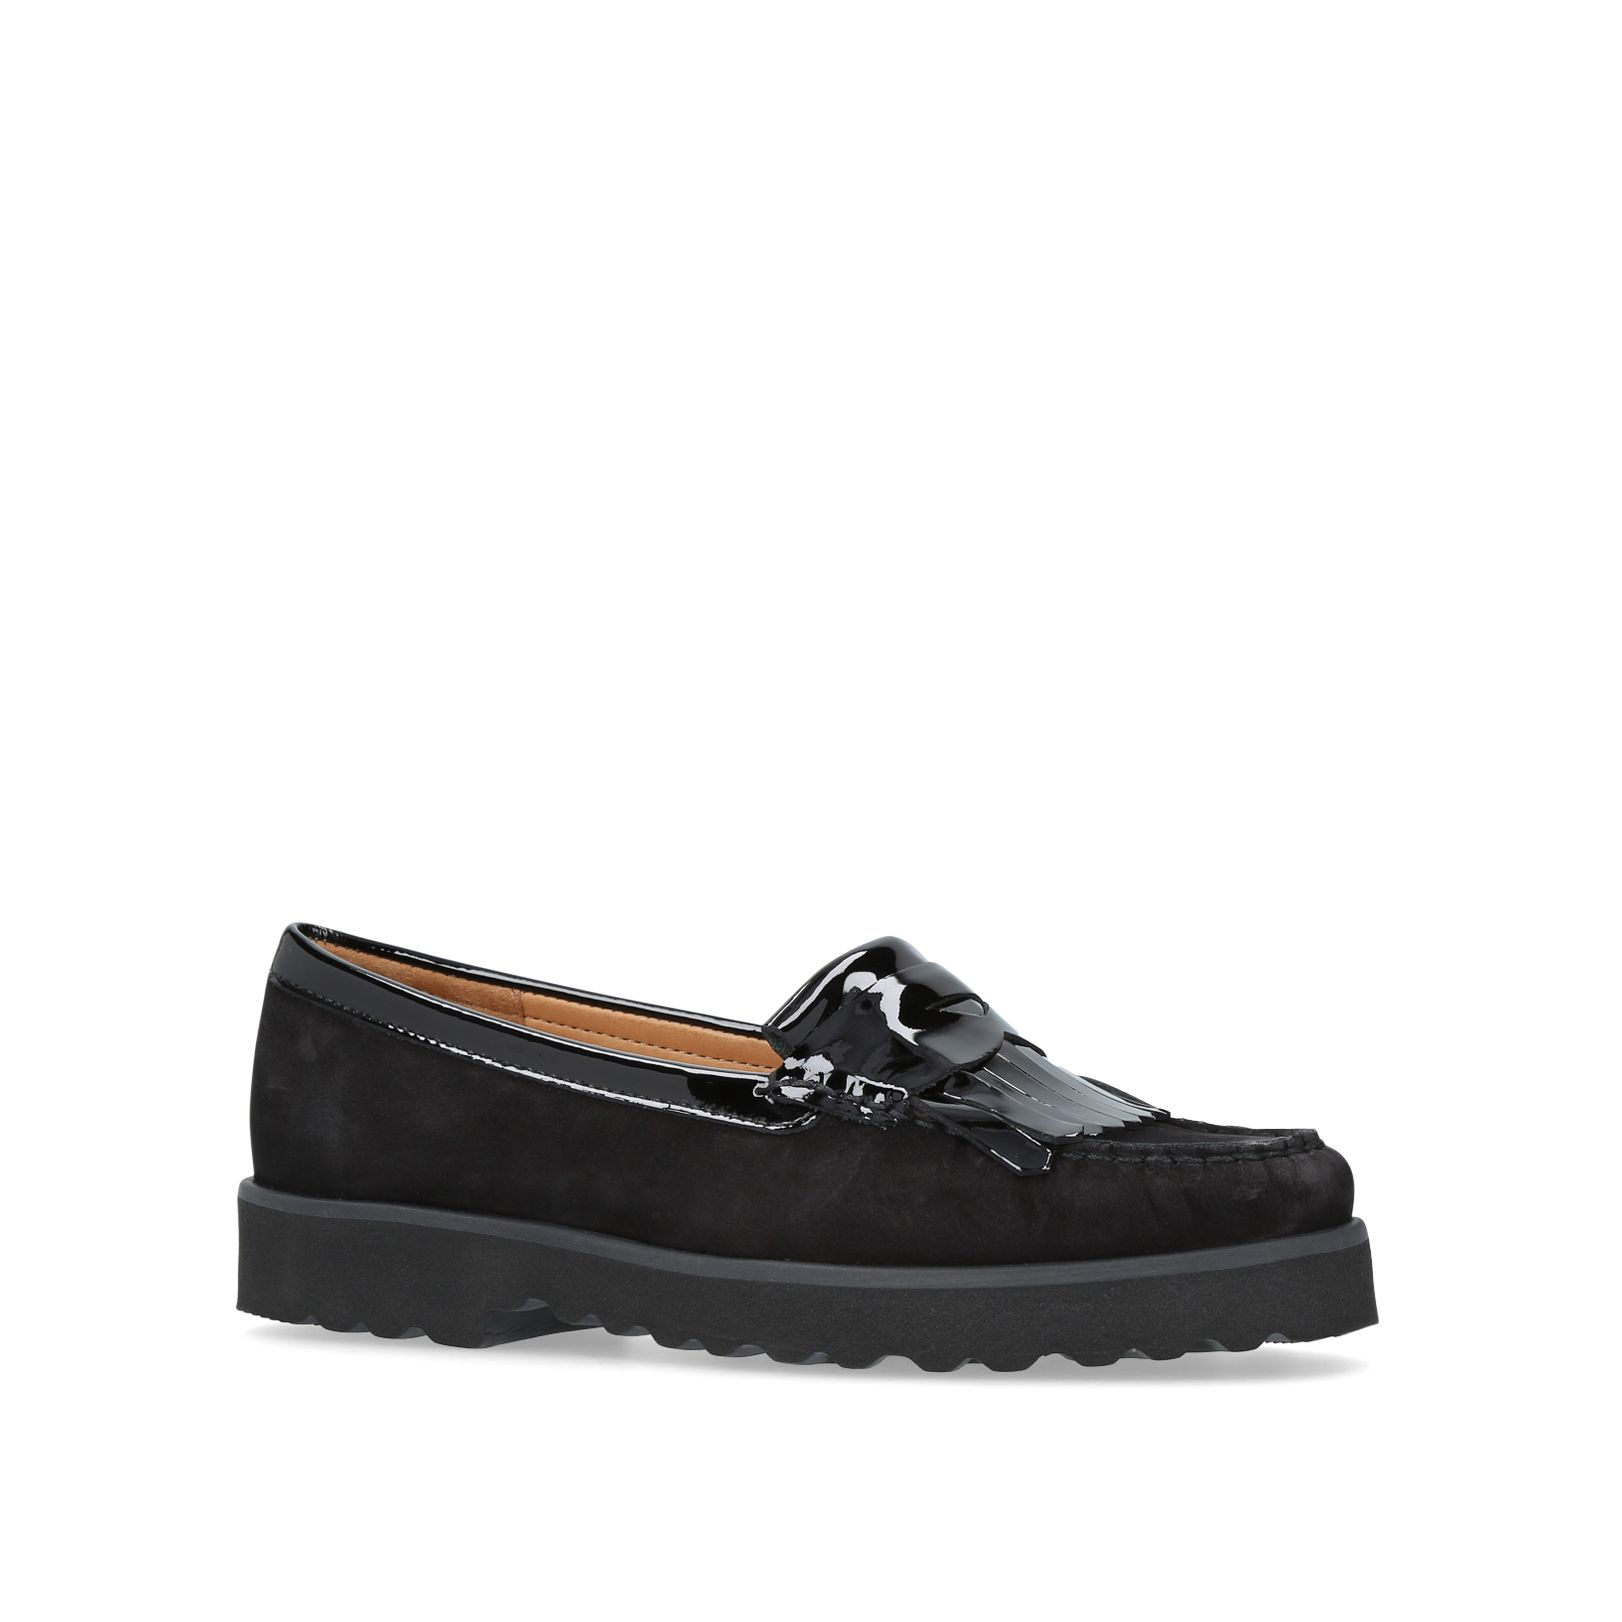 Carvela Comfort Claire loafers, Black